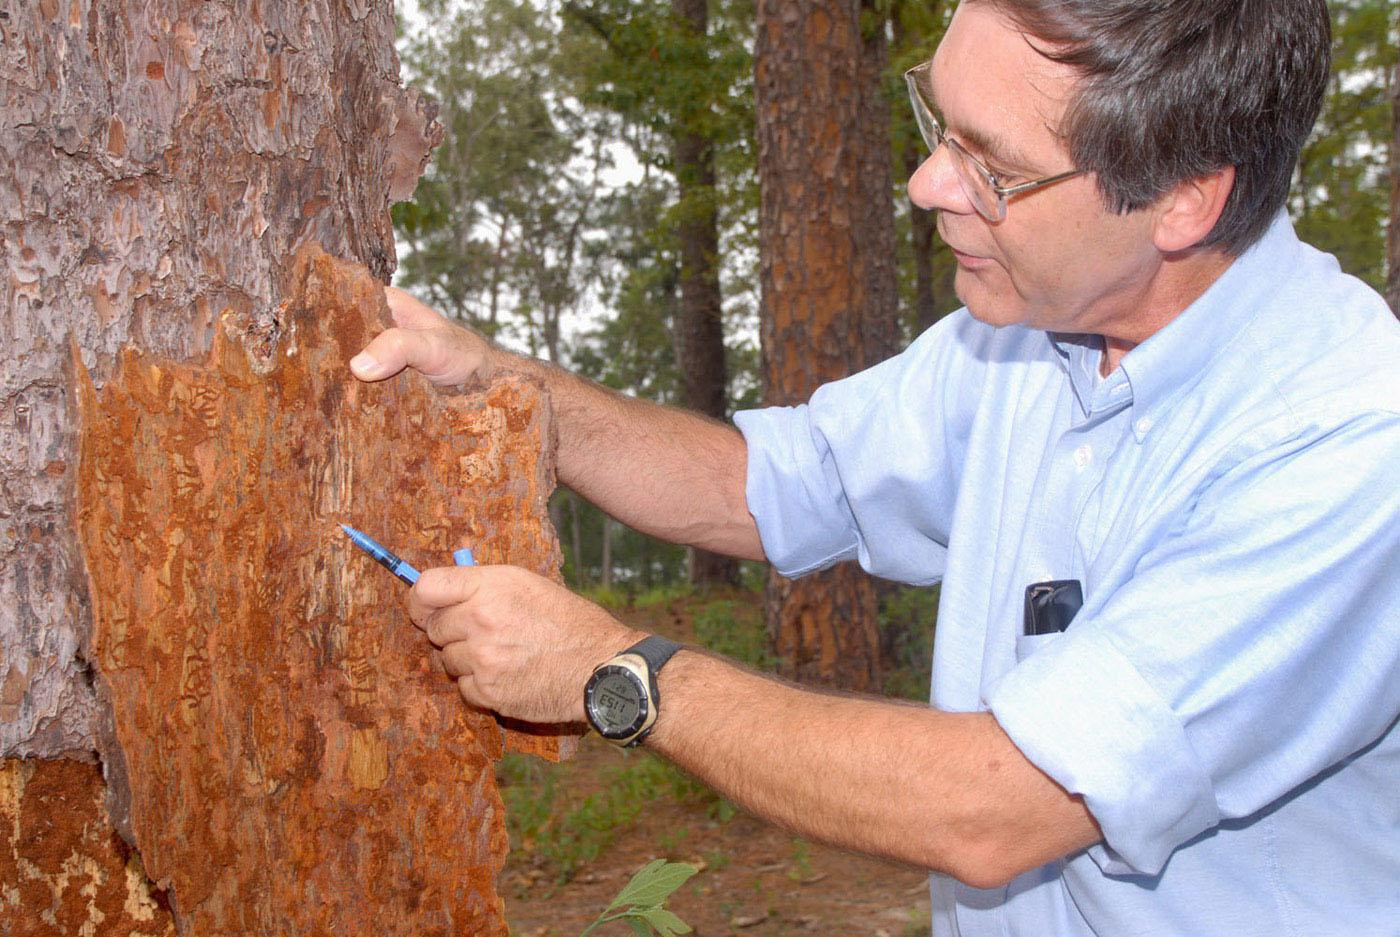 Glenn Hughes, a forestry specialist with Mississippi State University's Extension Service, points to the damage from pine bark beetles that are destroying this tree at Elks Lake in Forrest County. (Photo by Marco Nicovich)